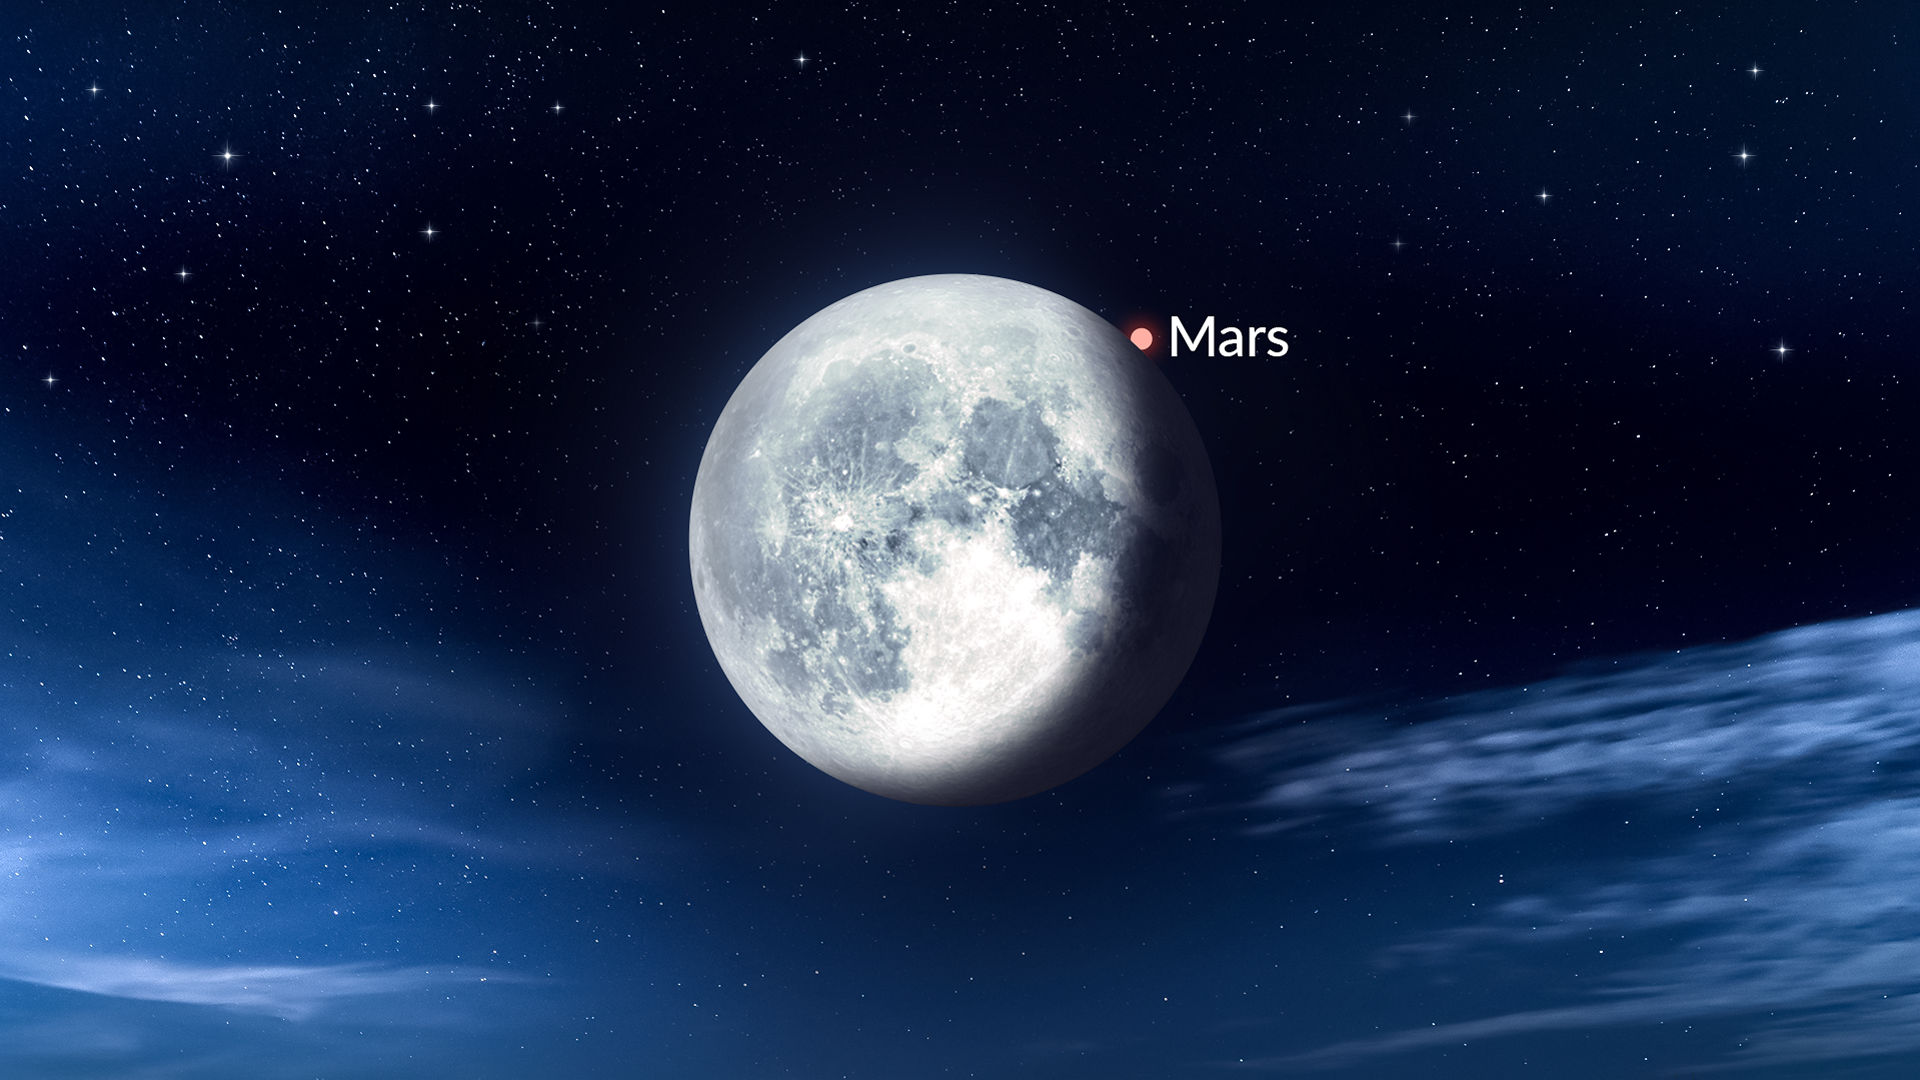 Lunar Occultation of Mars